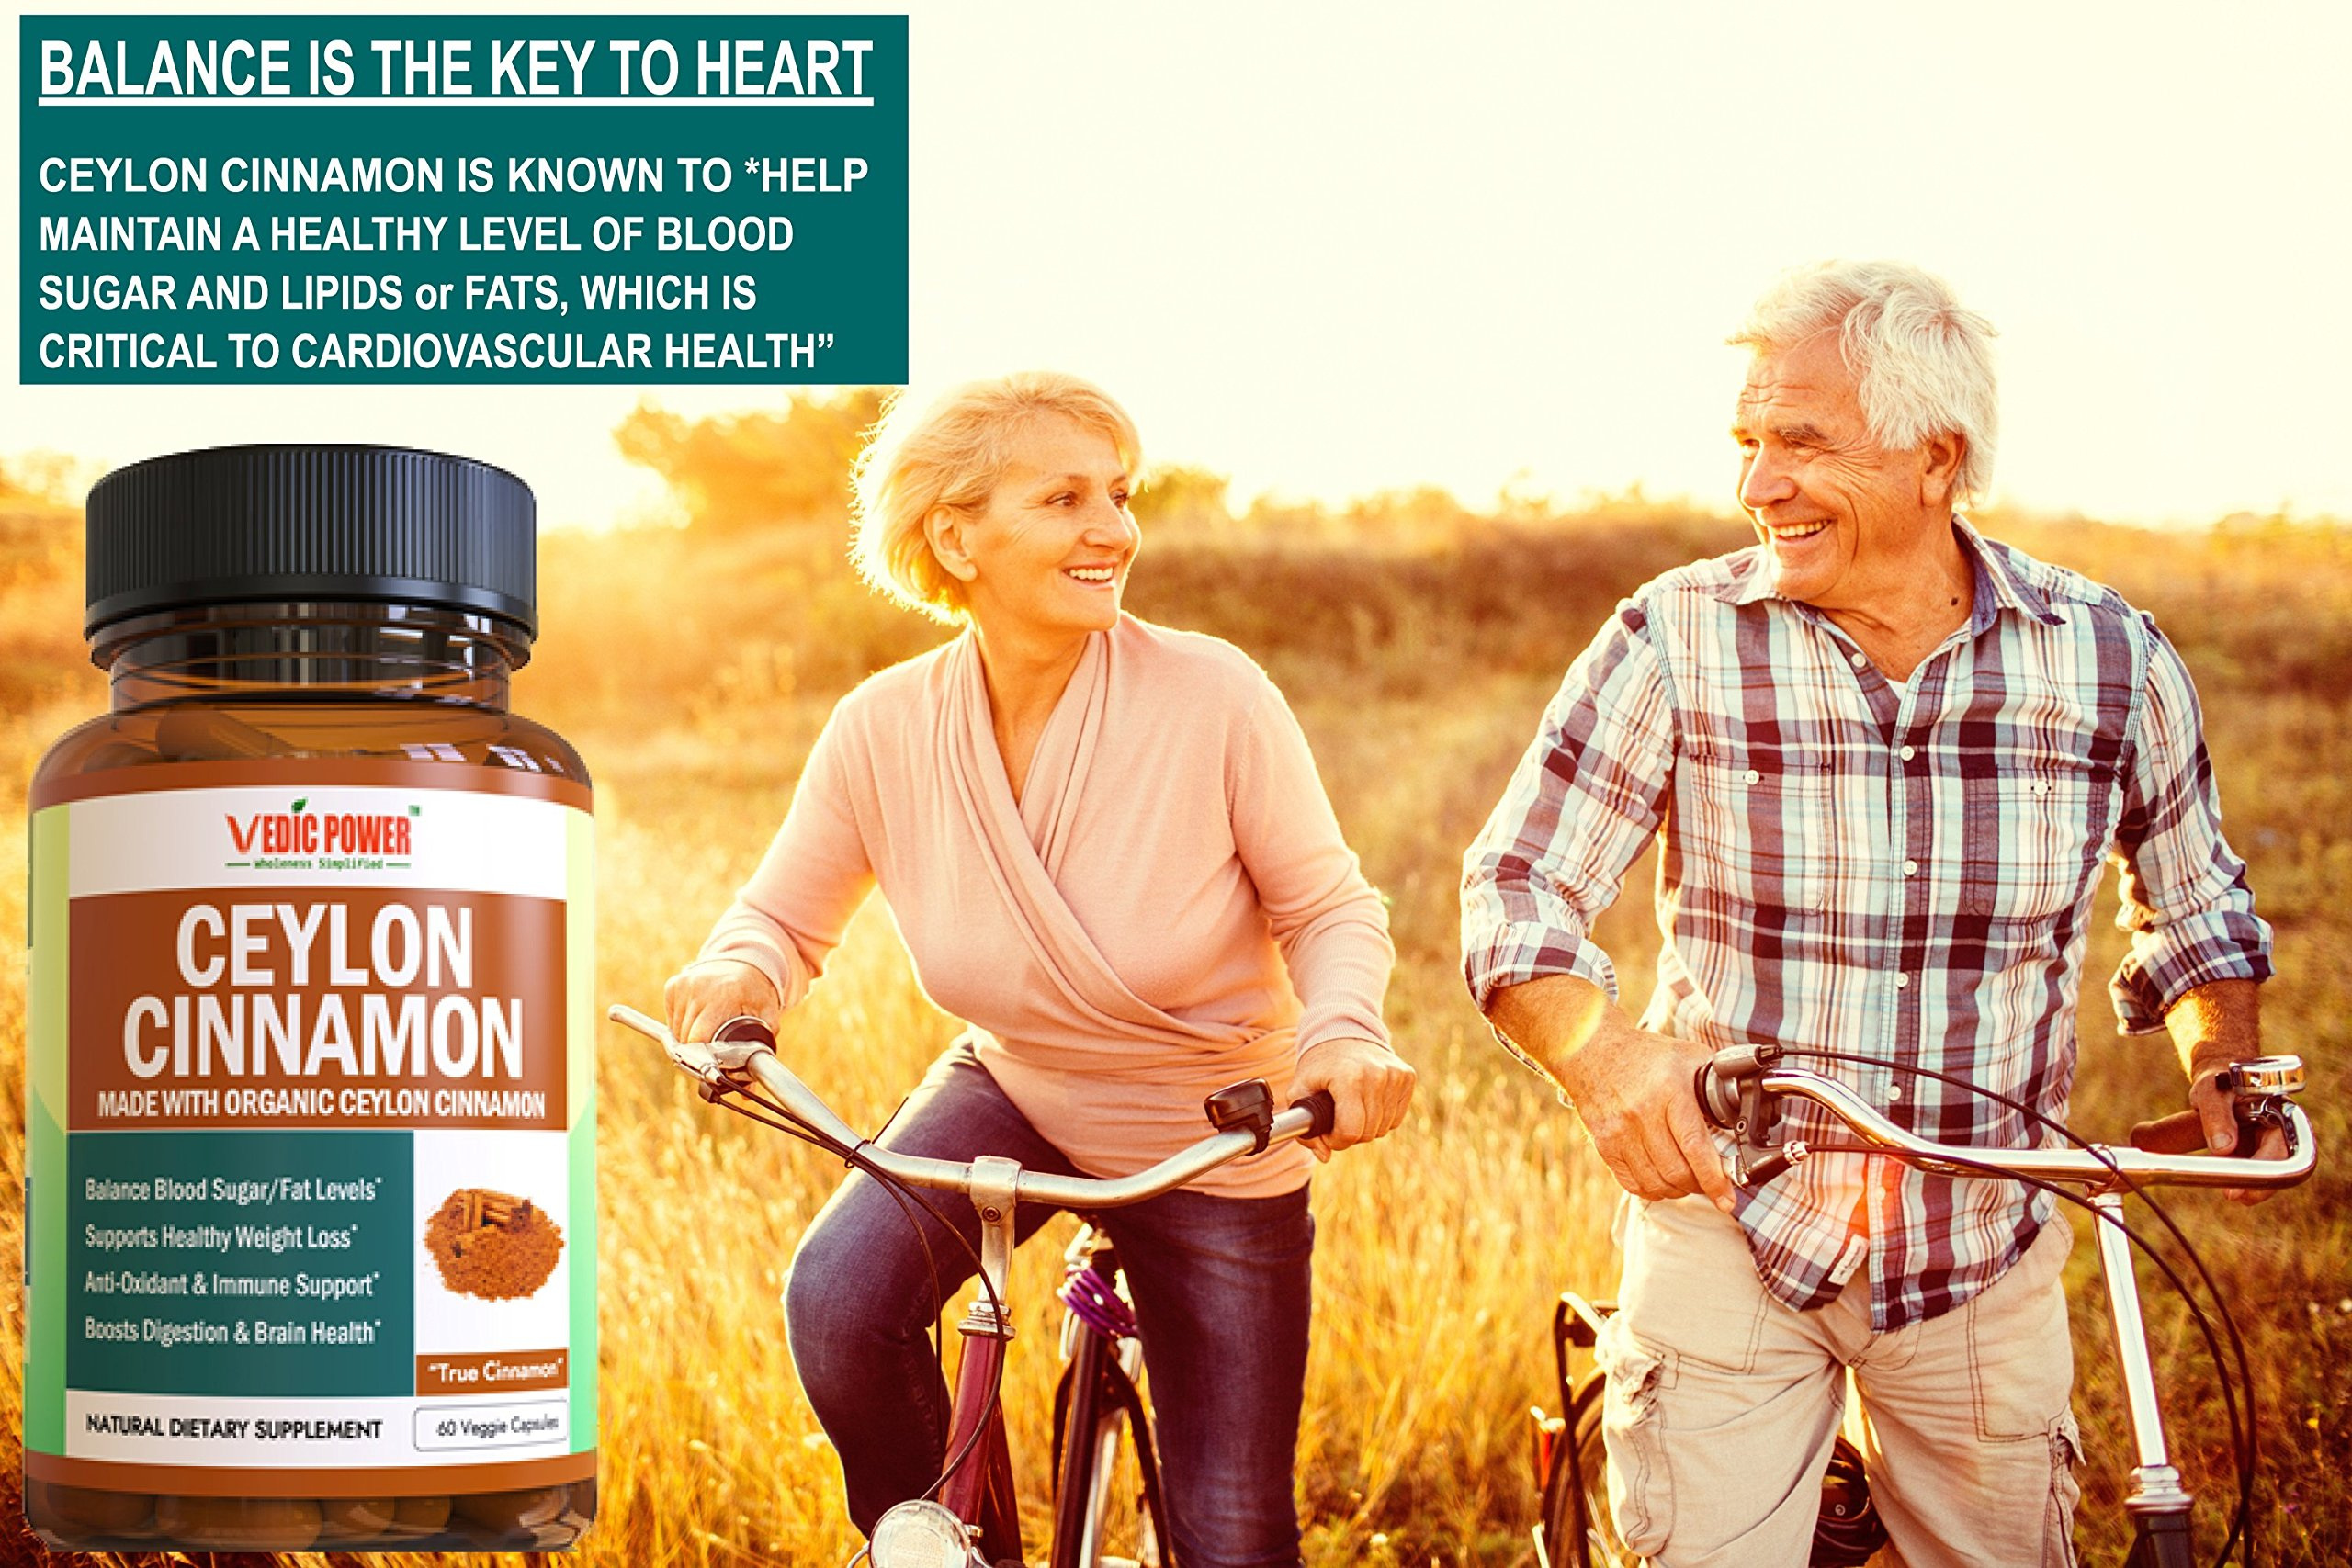 Organic Ceylon Cinnamon (UDAF Certified) 60 Capsules, 1200 mg per Serving Helps Manage Blood Sugar/Fat Levels, Boosts Heart Health, Anti-Oxidant & Immune Support by Vedic Power (TM) Wholeness Simplified (Image #5)